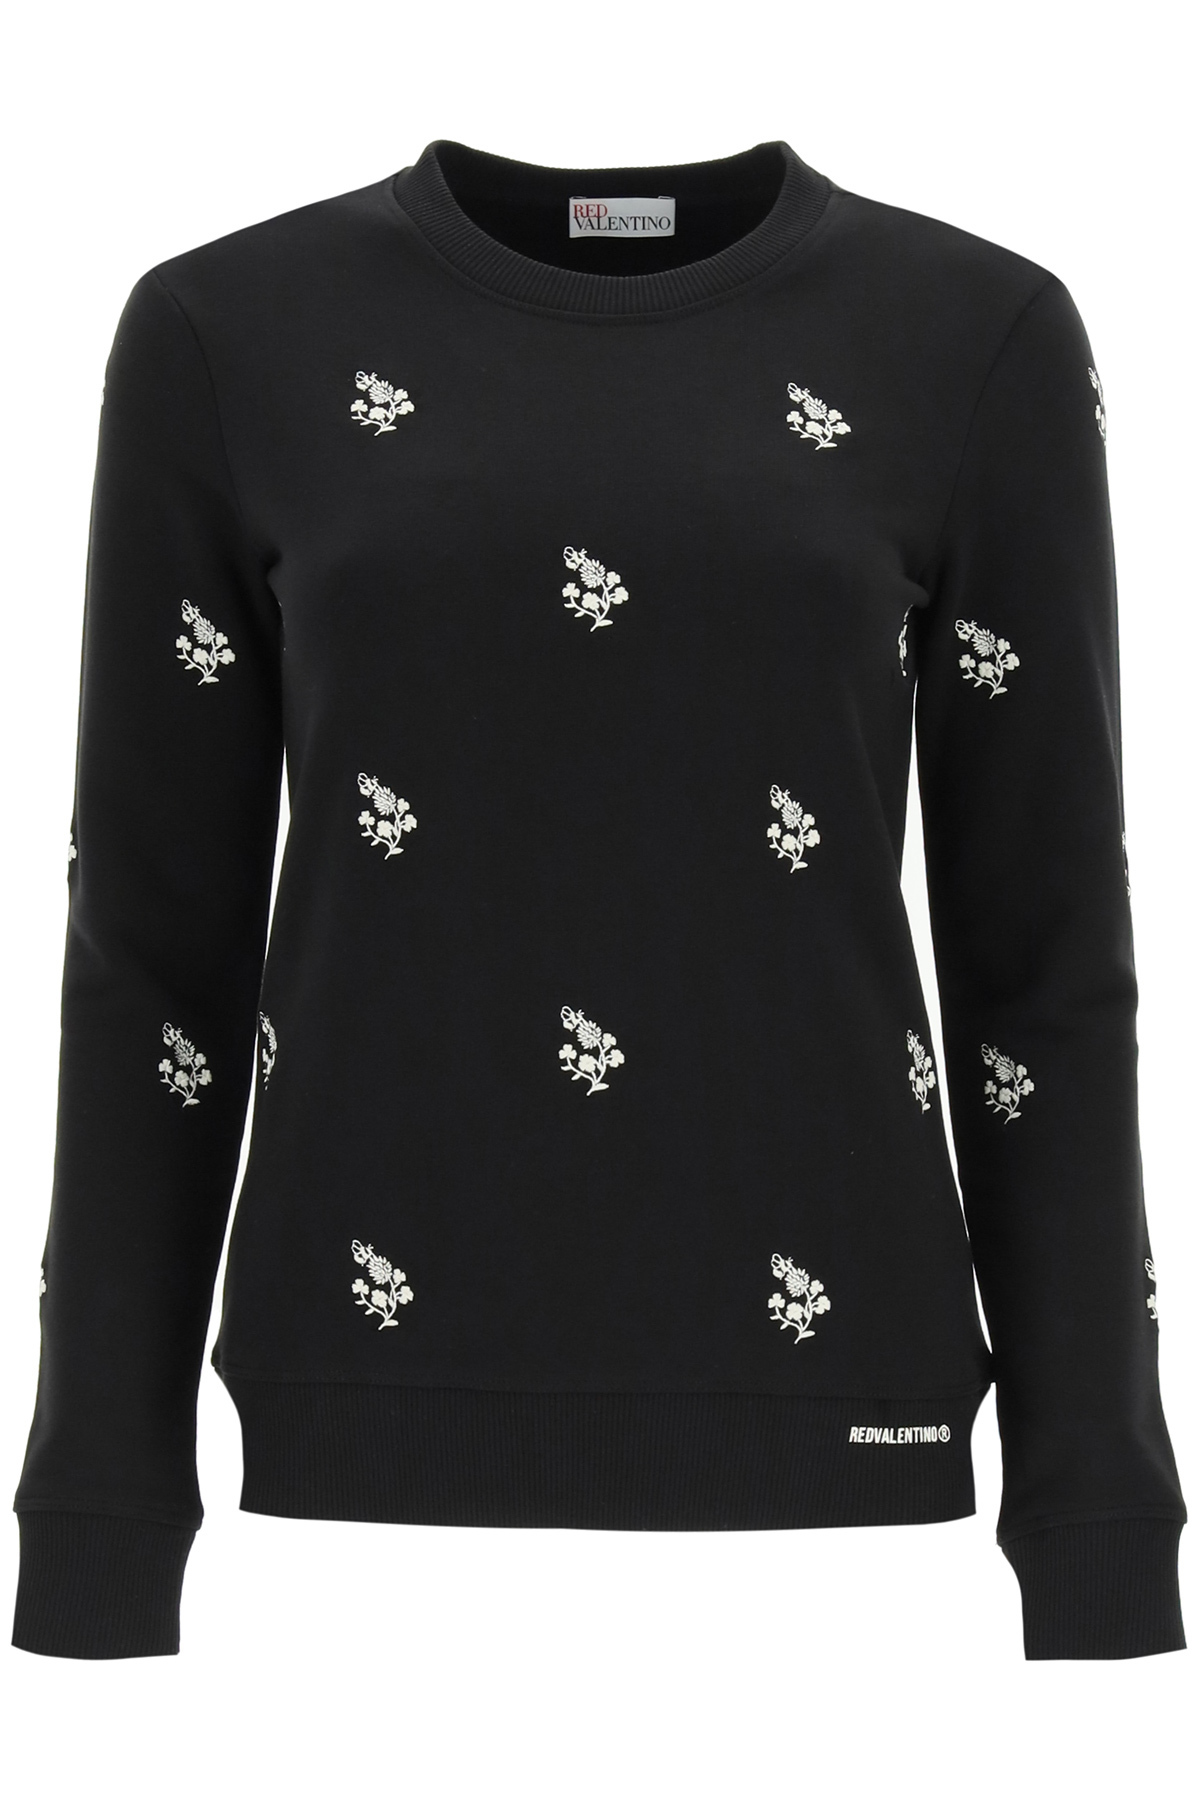 RED VALENTINO SWEATSHIRT WITH CLOVER EMBROIDERY